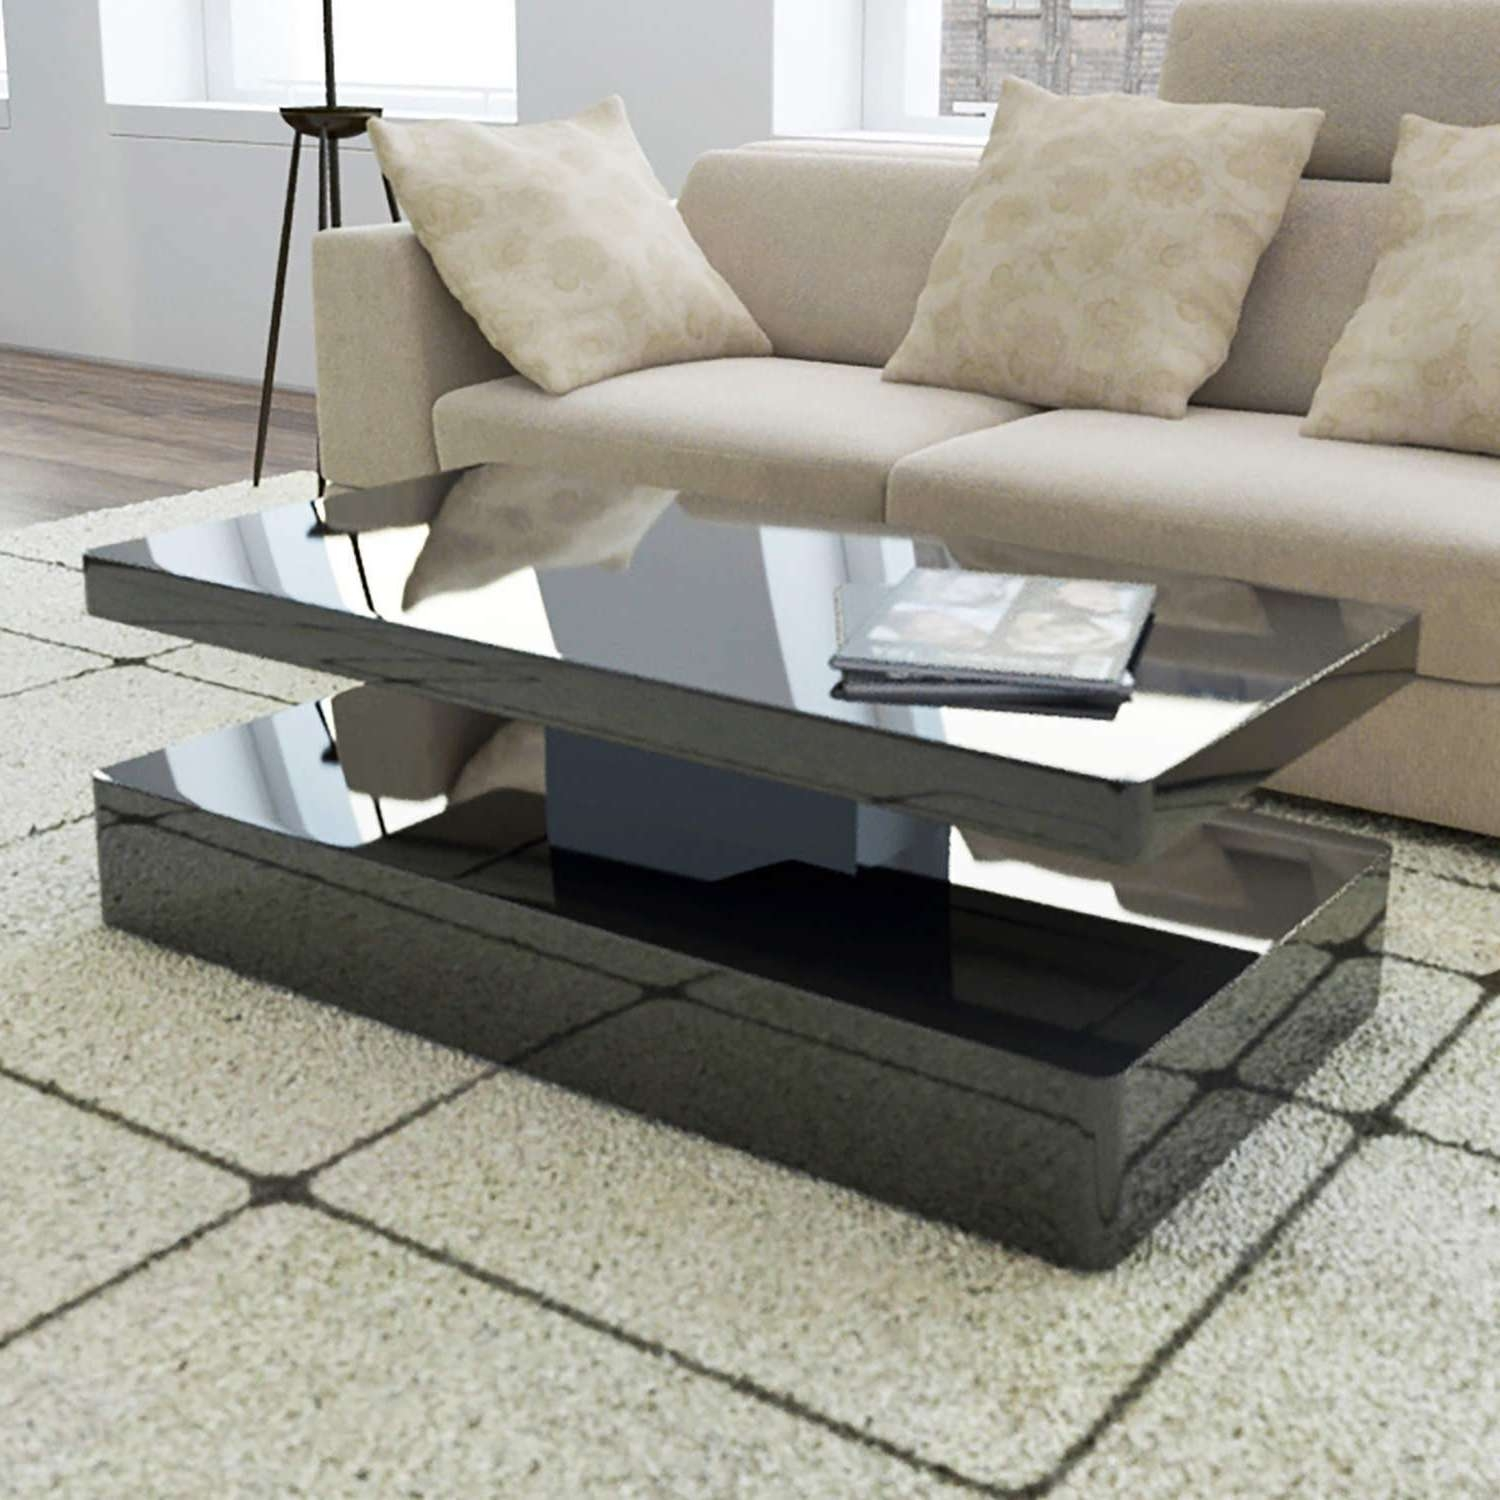 Tiffany Black High Gloss Rectangular Coffee Table With Led With Latest Gloss Coffee Tables (View 15 of 20)